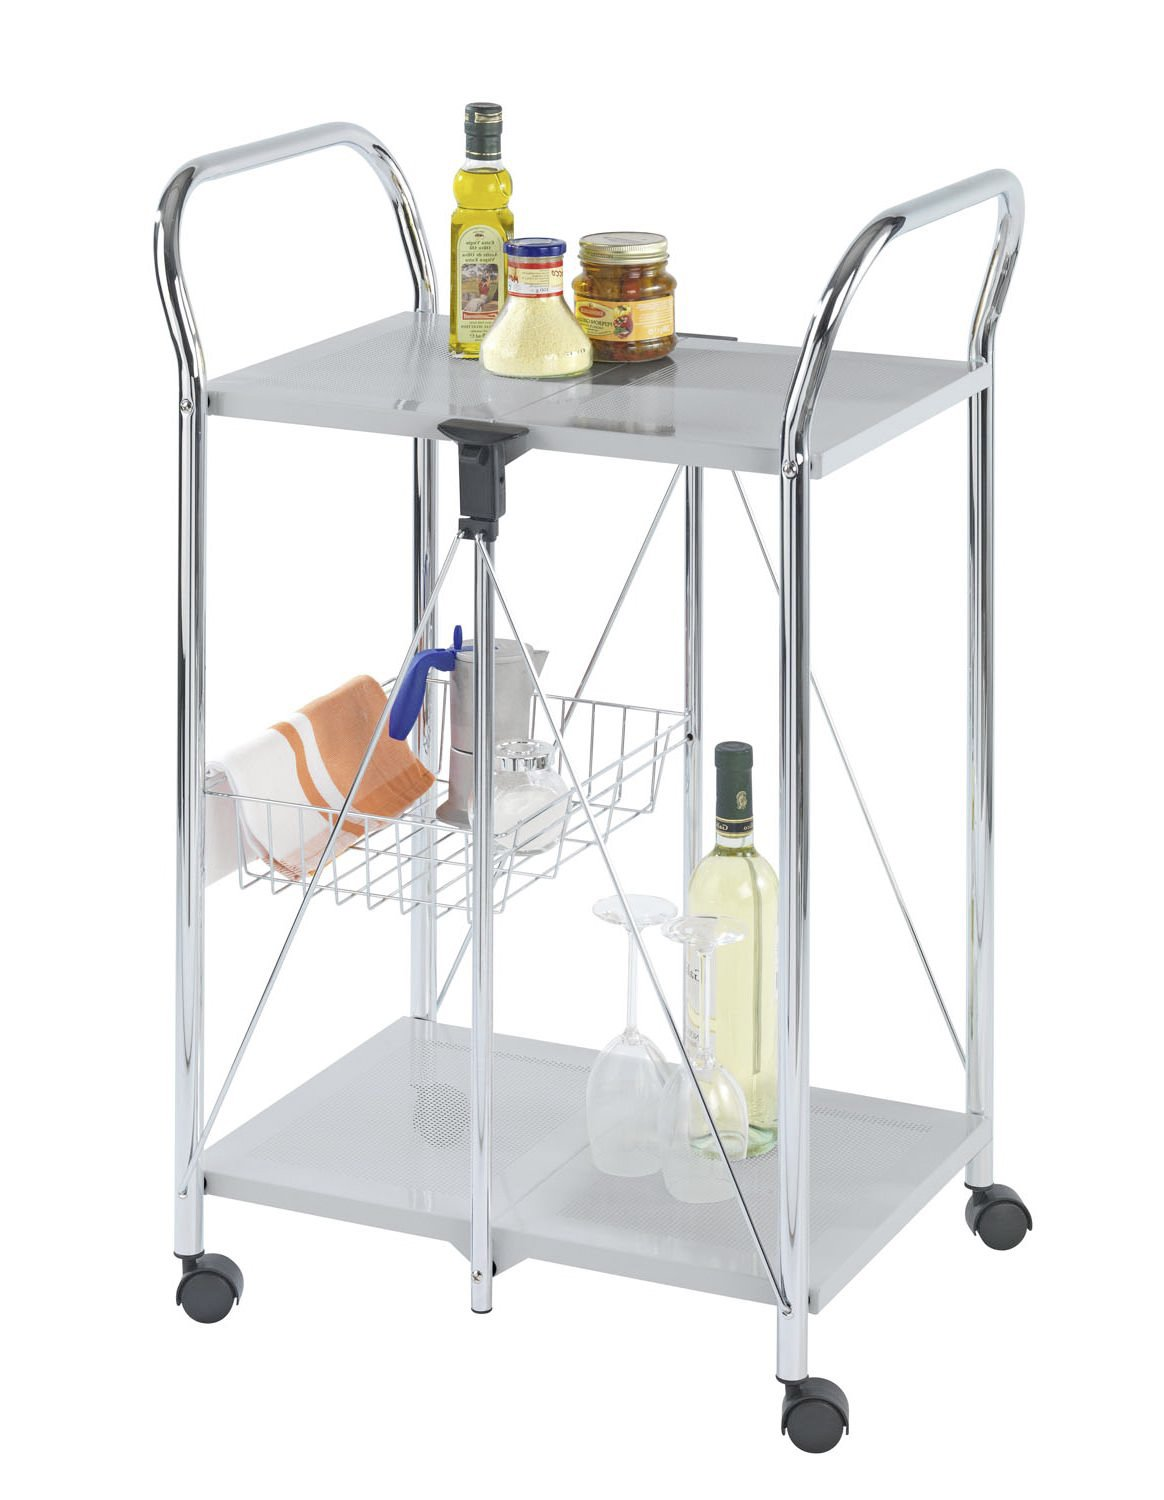 WENKO 900060100 Kitchen and utility trolley Sunny silver, 60 x 90 x 44 Cm- foldable, Powder-coated metal, 22.2 x 35.6 x 17.3 inch, Silver/Chrome by WENKO (Image #1)